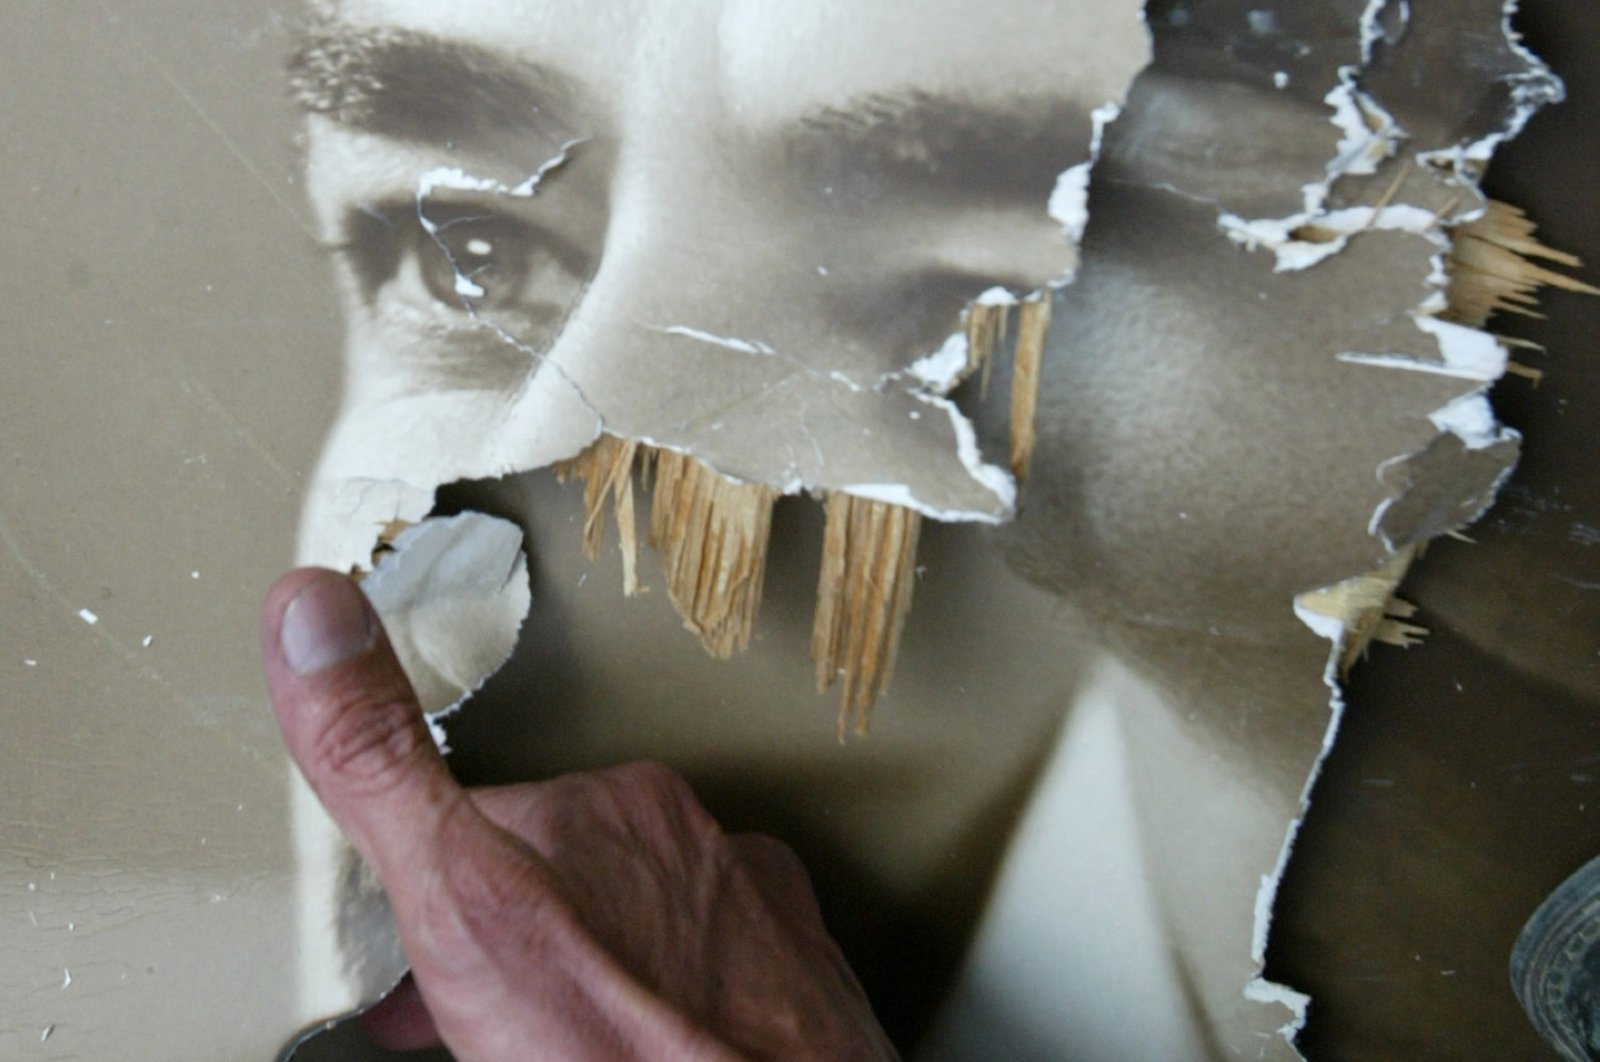 An Iraqi burns a torn picture of late leader Saddam Hussein in the capital Baghdad, Iraq, April 9, 2003. (AFP Photo)